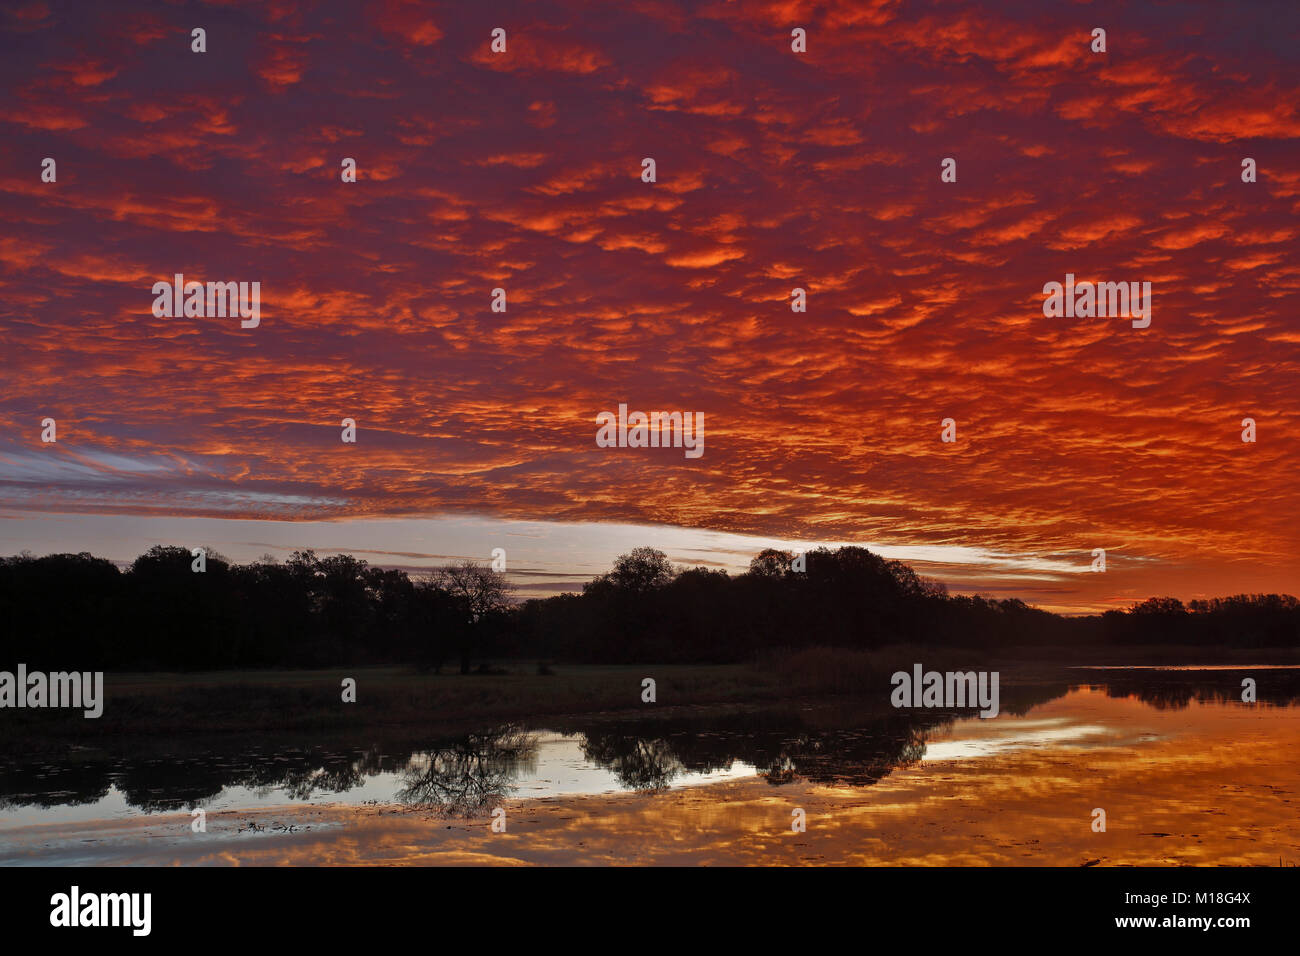 Sunrise with Altocumulus clouds over the Löbben Lake,Biosphere Reserve Middle Elbe,Saxony-Anhalt,Germany - Stock Image